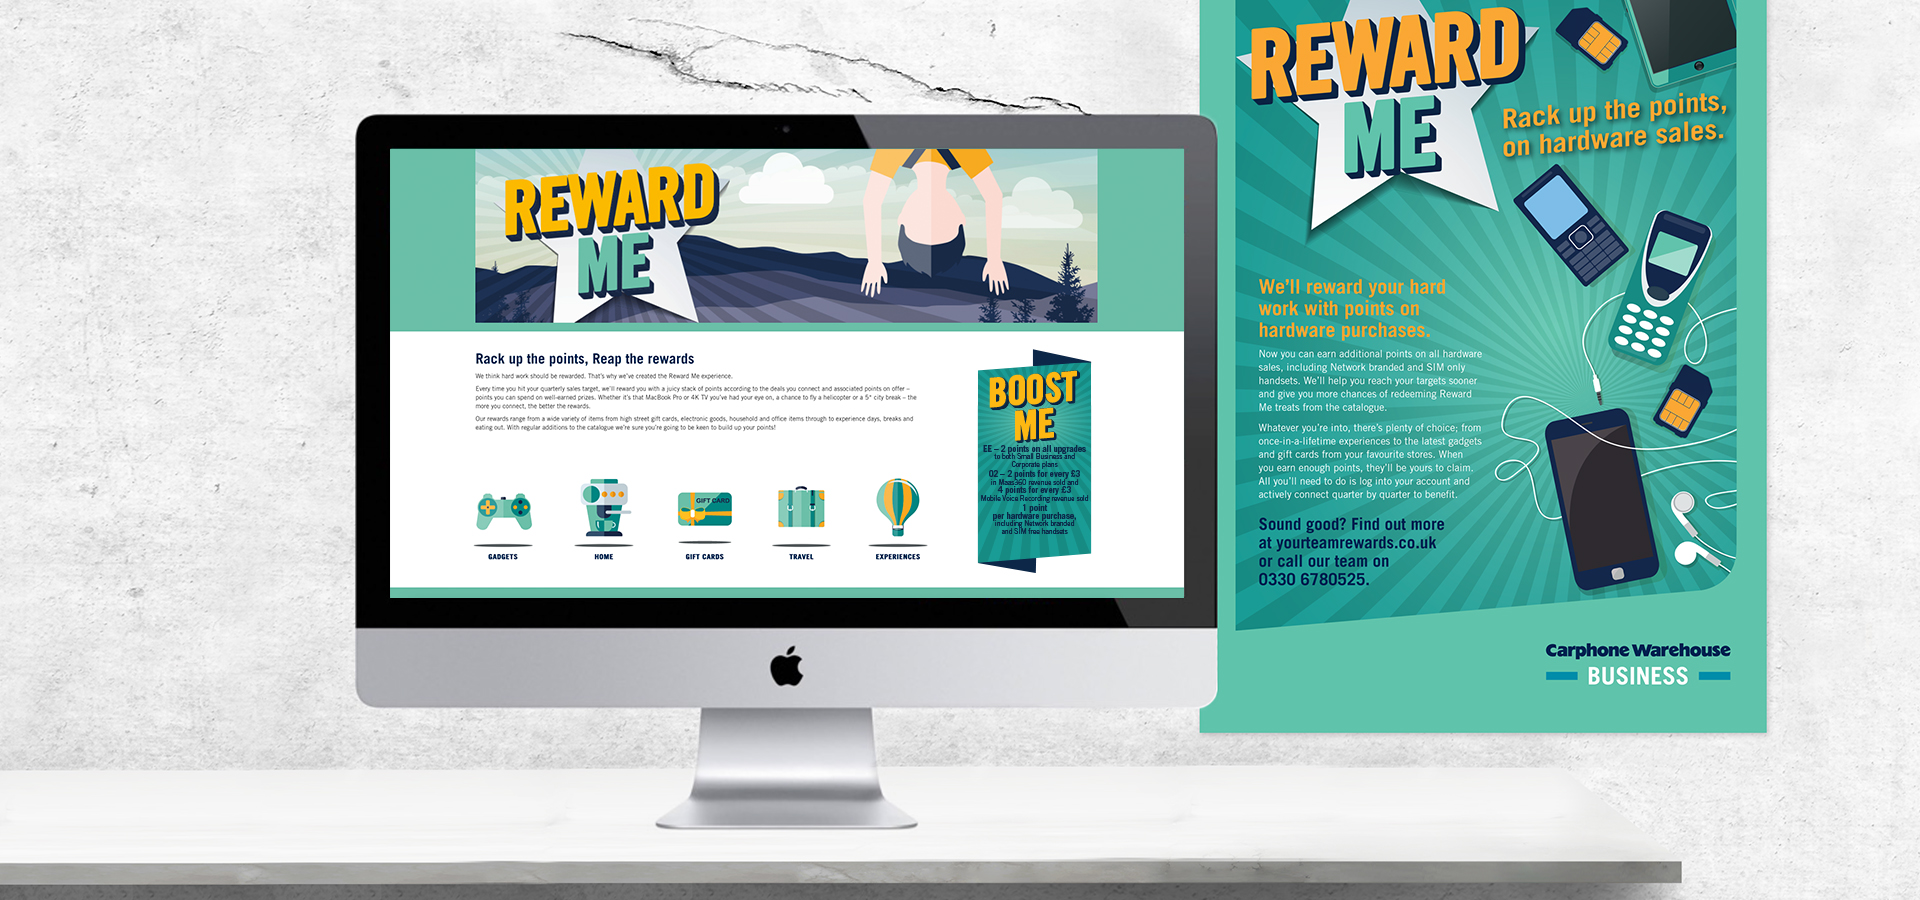 Carphone Warehouse Reward Me Website